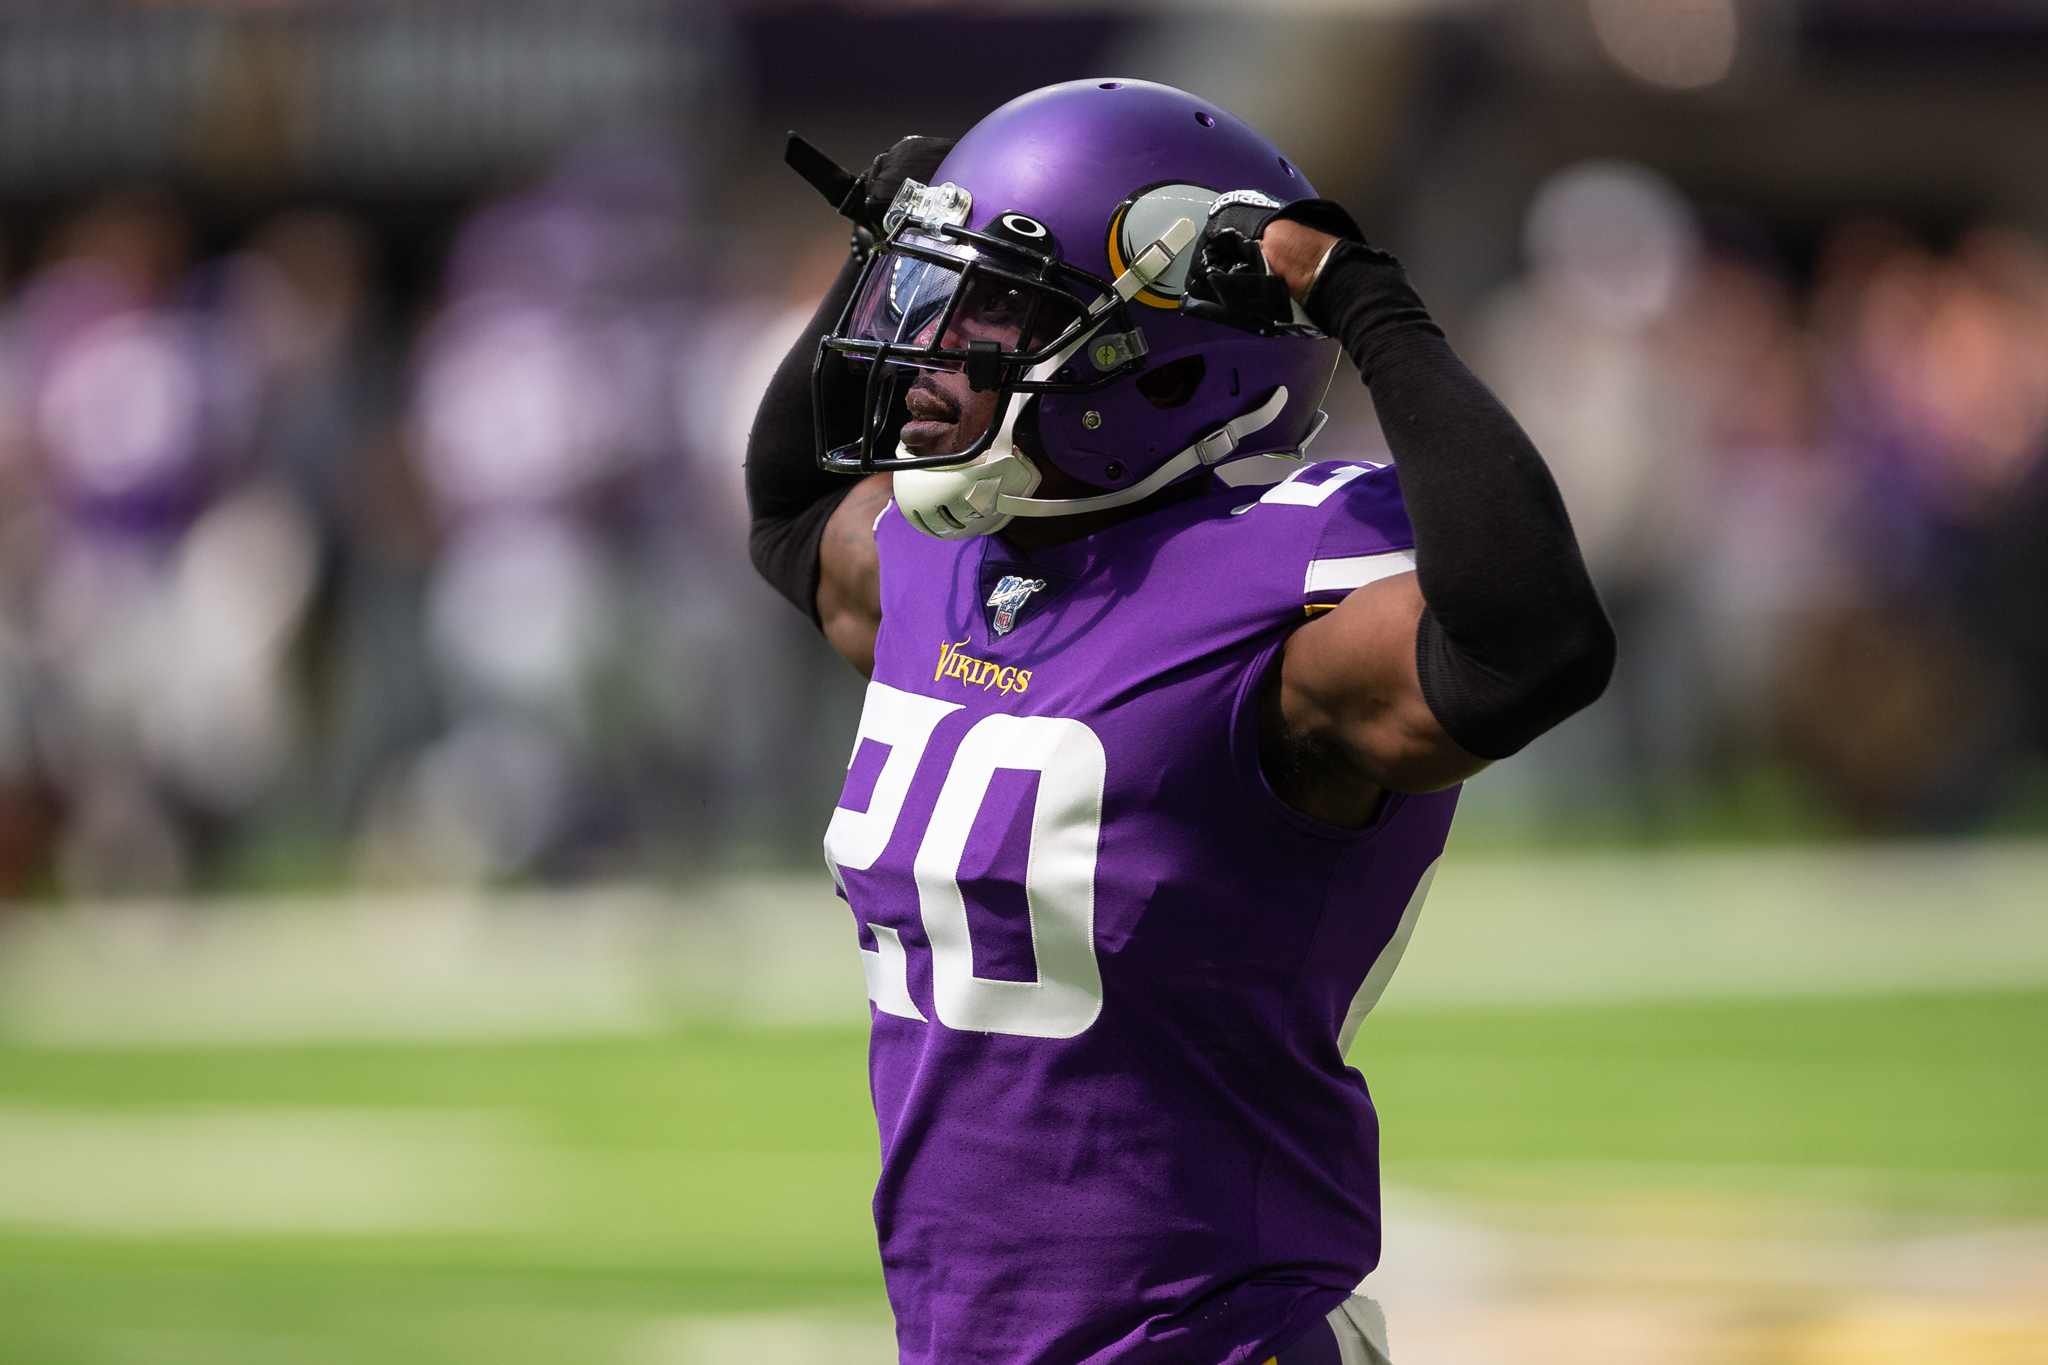 Aug 24, 2019; Minneapolis, MN, USA; Minnesota Vikings cornerback Mackensie Alexander (20) reacts after making a play during the first quarter against the Arizona Cardinals at U.S. Bank Stadium. Mandatory Credit: Harrison Barden-USA TODAY Sports